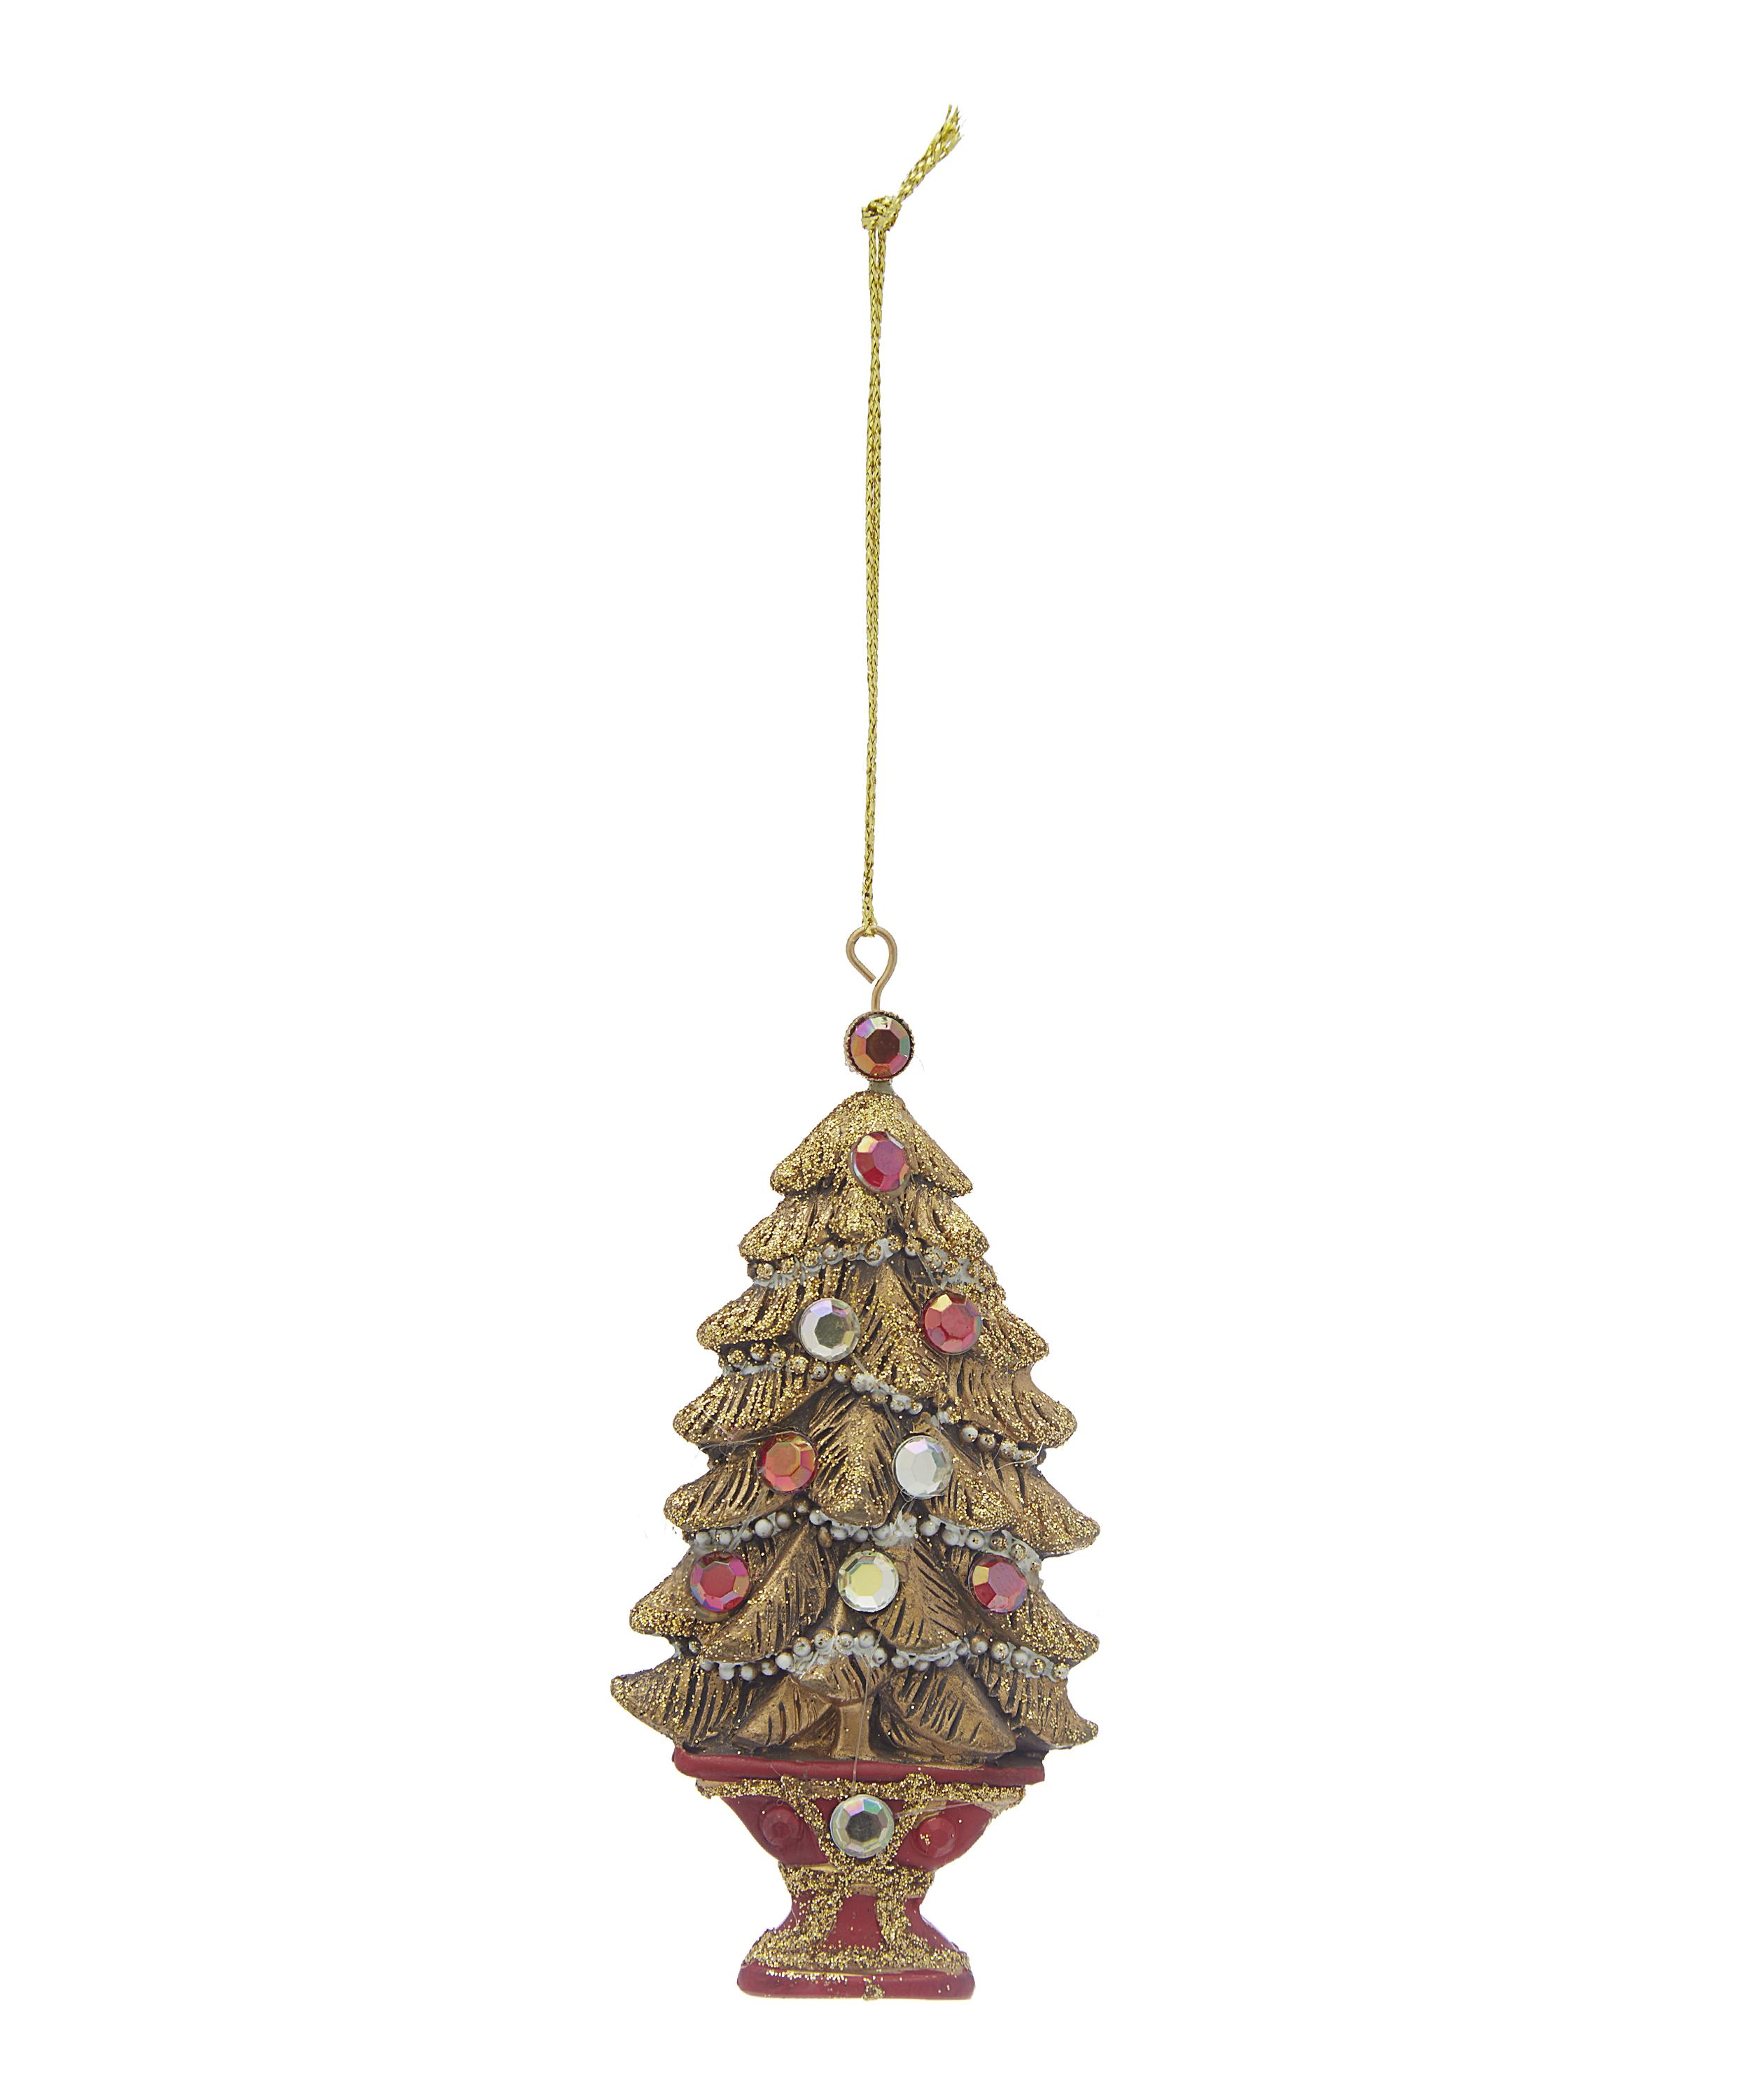 Jewelled Christmas Tree In Pot Ornament